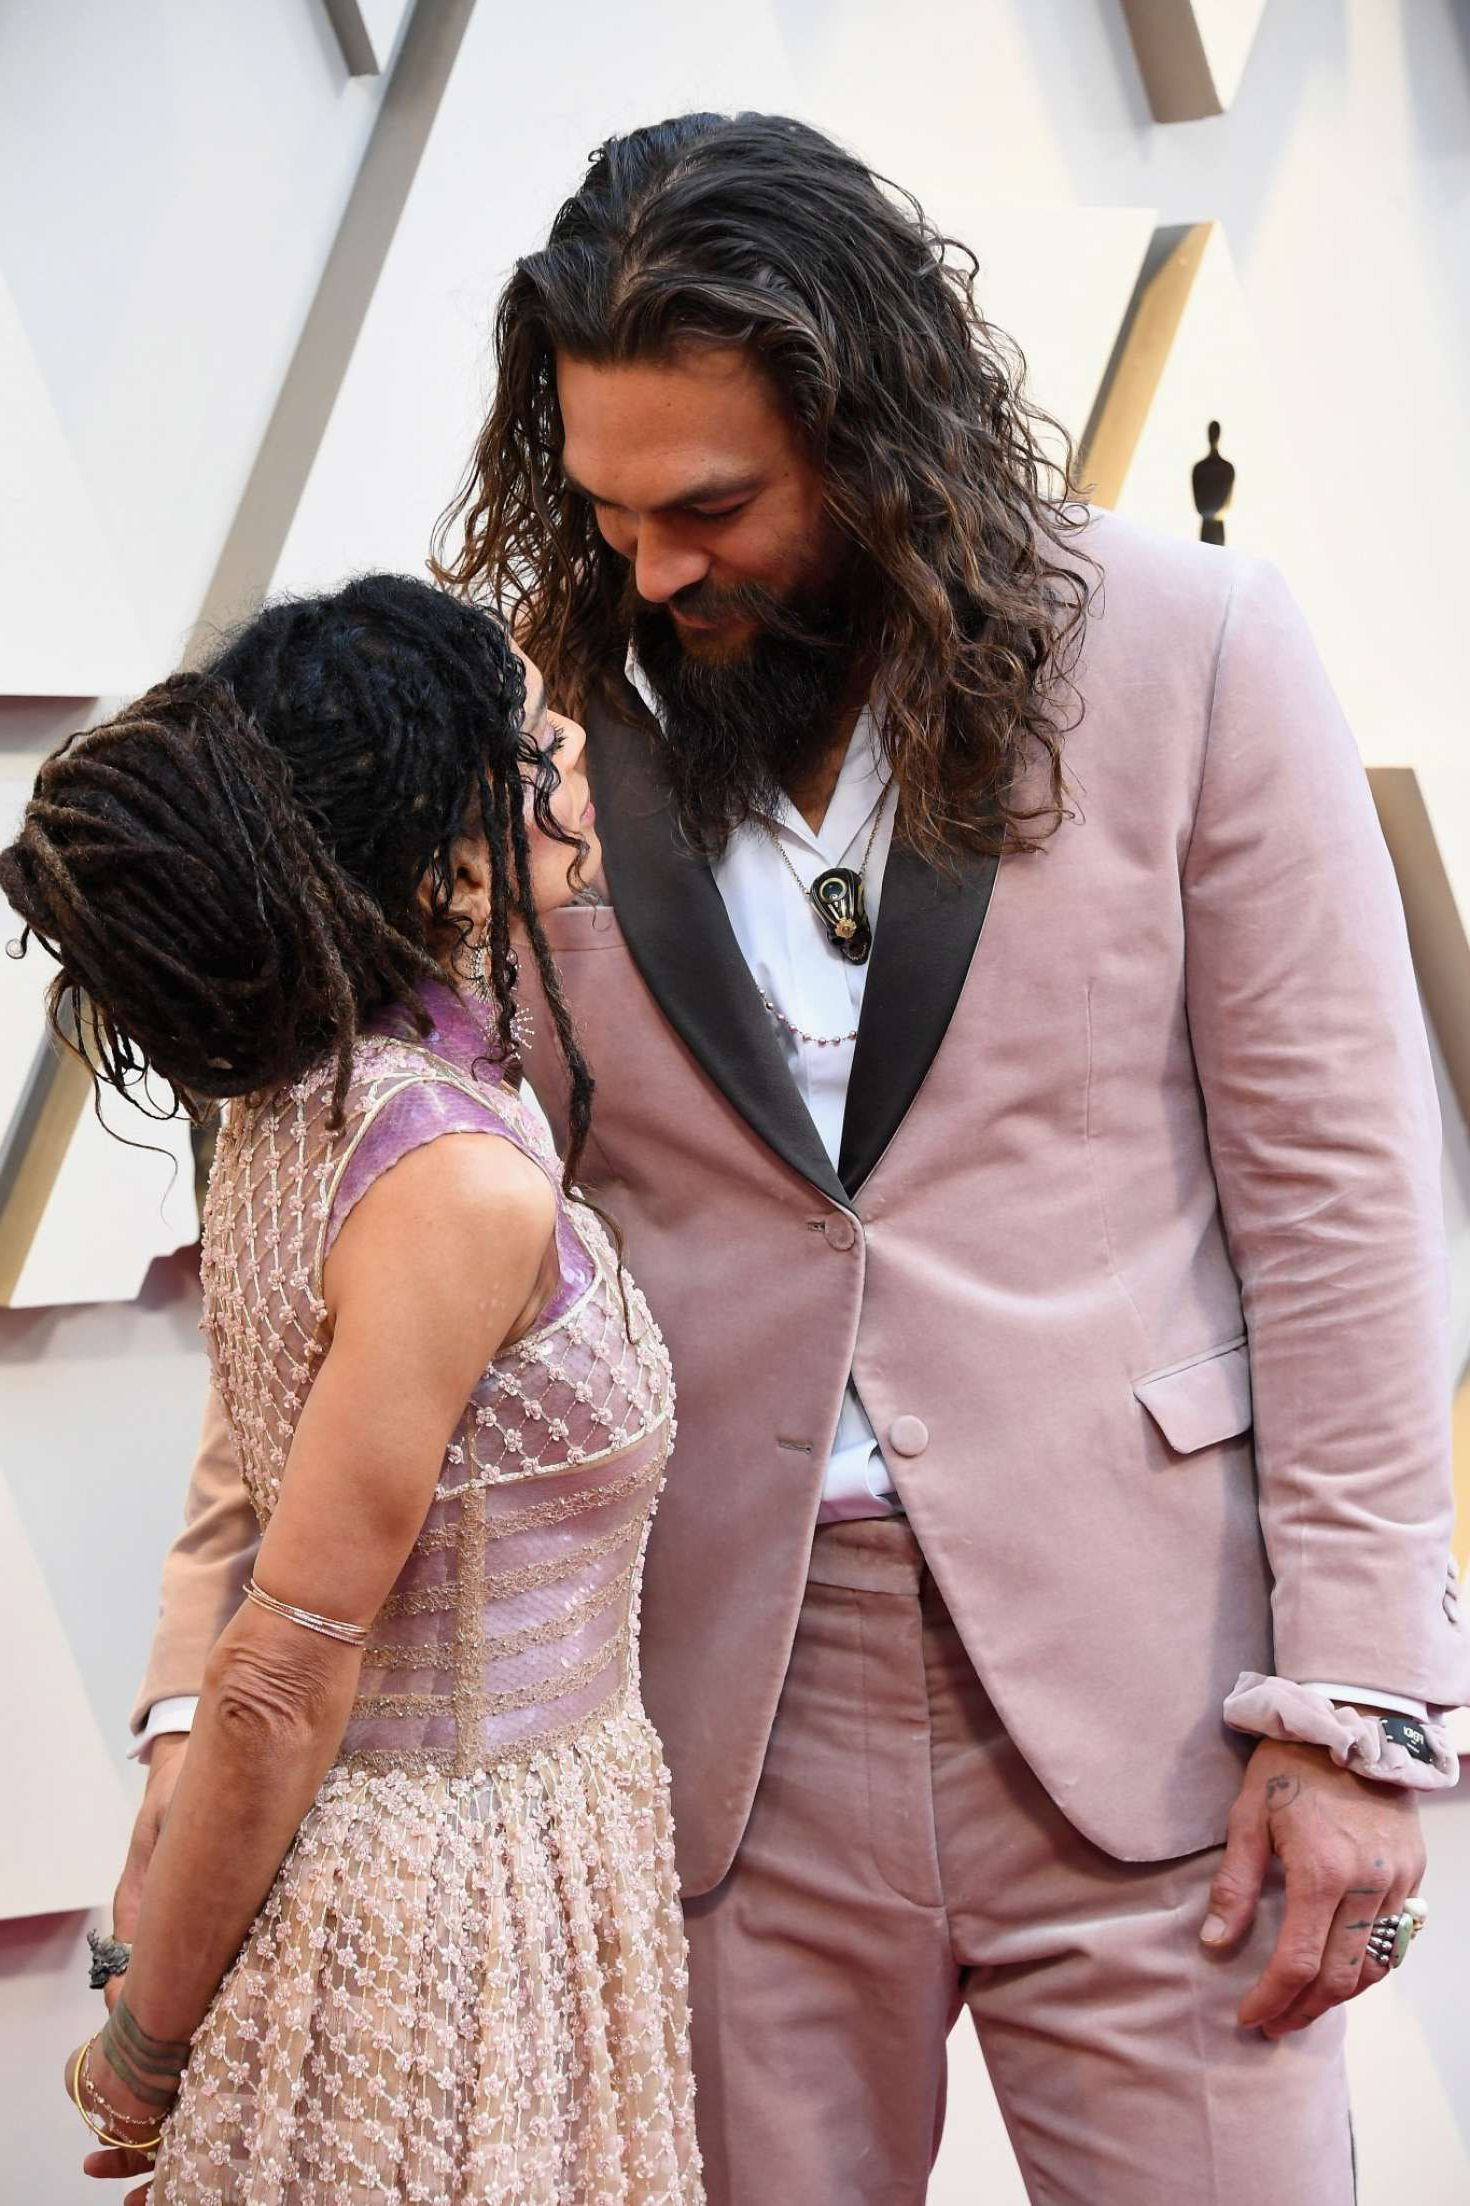 Jason Momoa with Lisa Bonet, eyes to eyes at the Oscars in Los Angeles, 2019